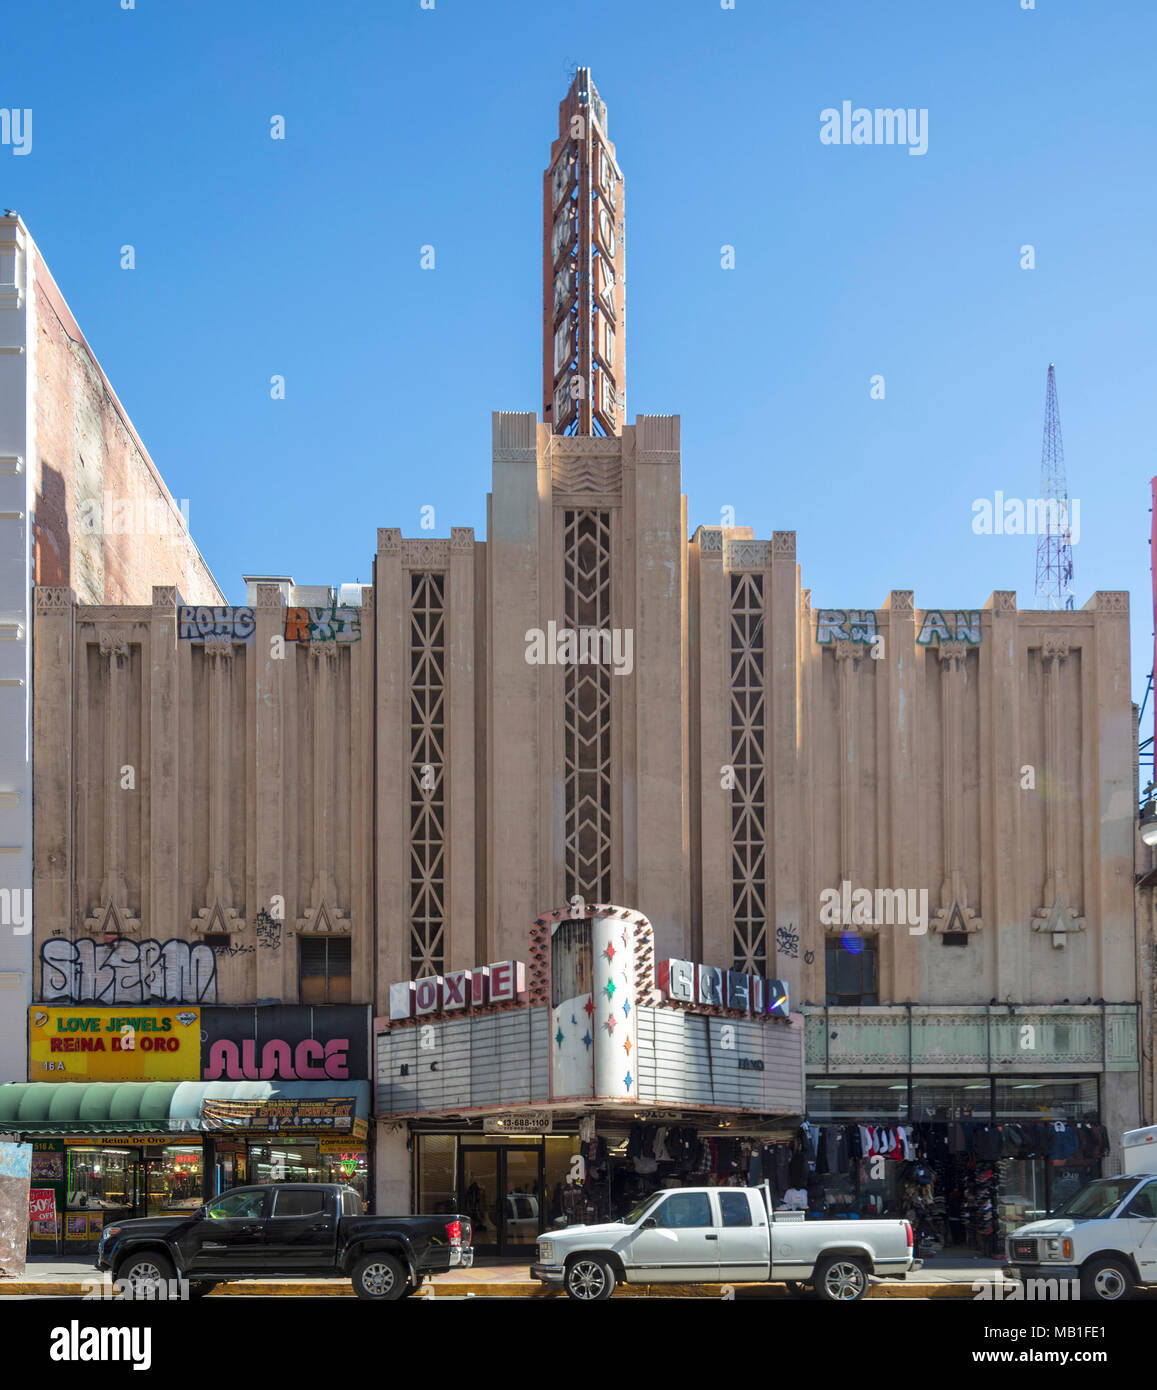 Die roxie Film Theater, Broadway, Downtown Los Angeles, Kalifornien, USA Stockbild